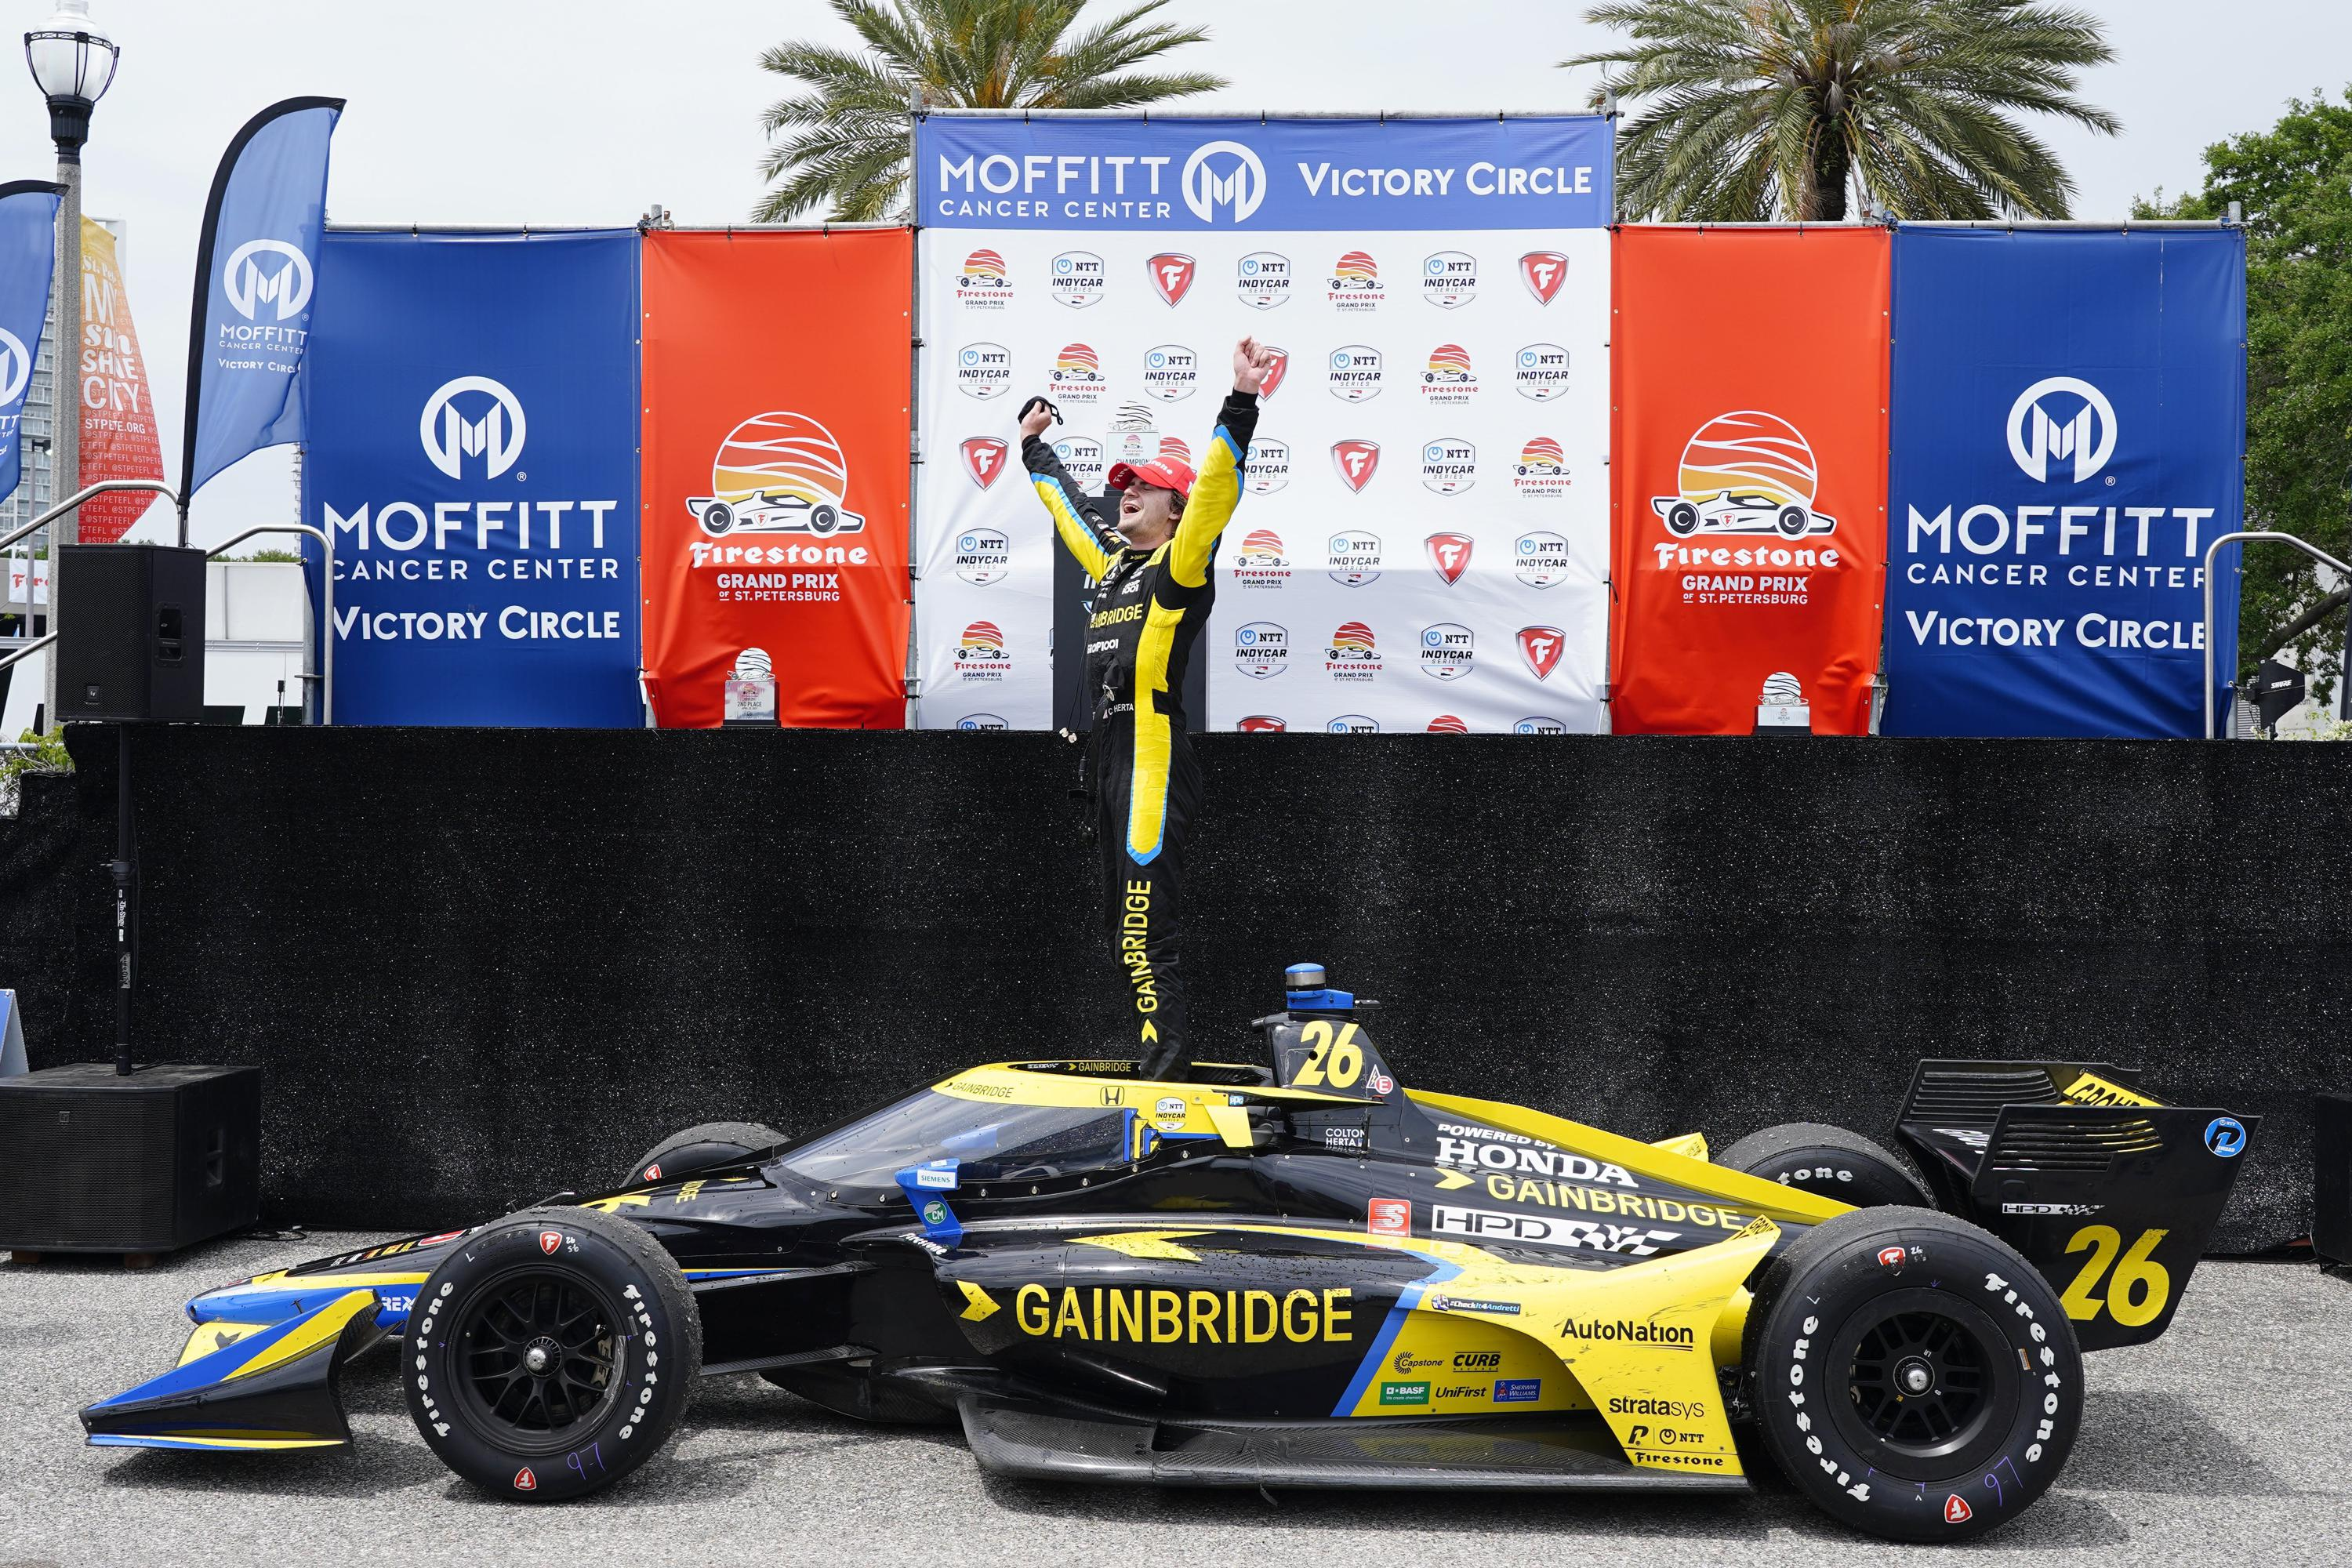 Herta staying put: American signs extension with Andretti